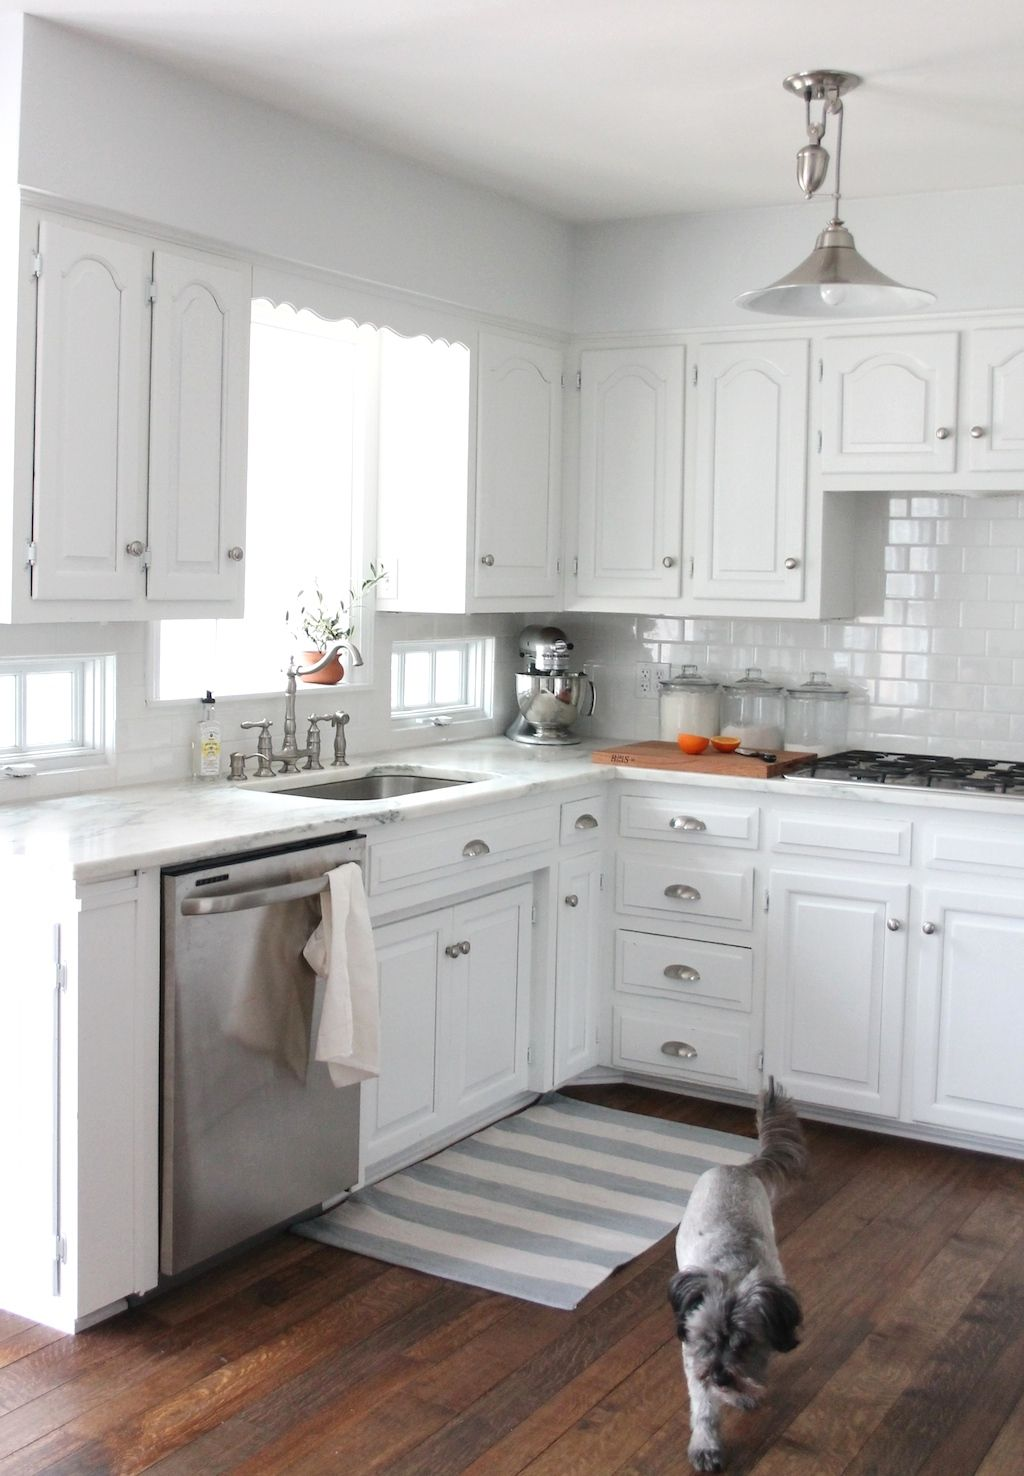 We did it our kitchen remodel easy diy projects and for Kitchen remodel ideas with white cabinets